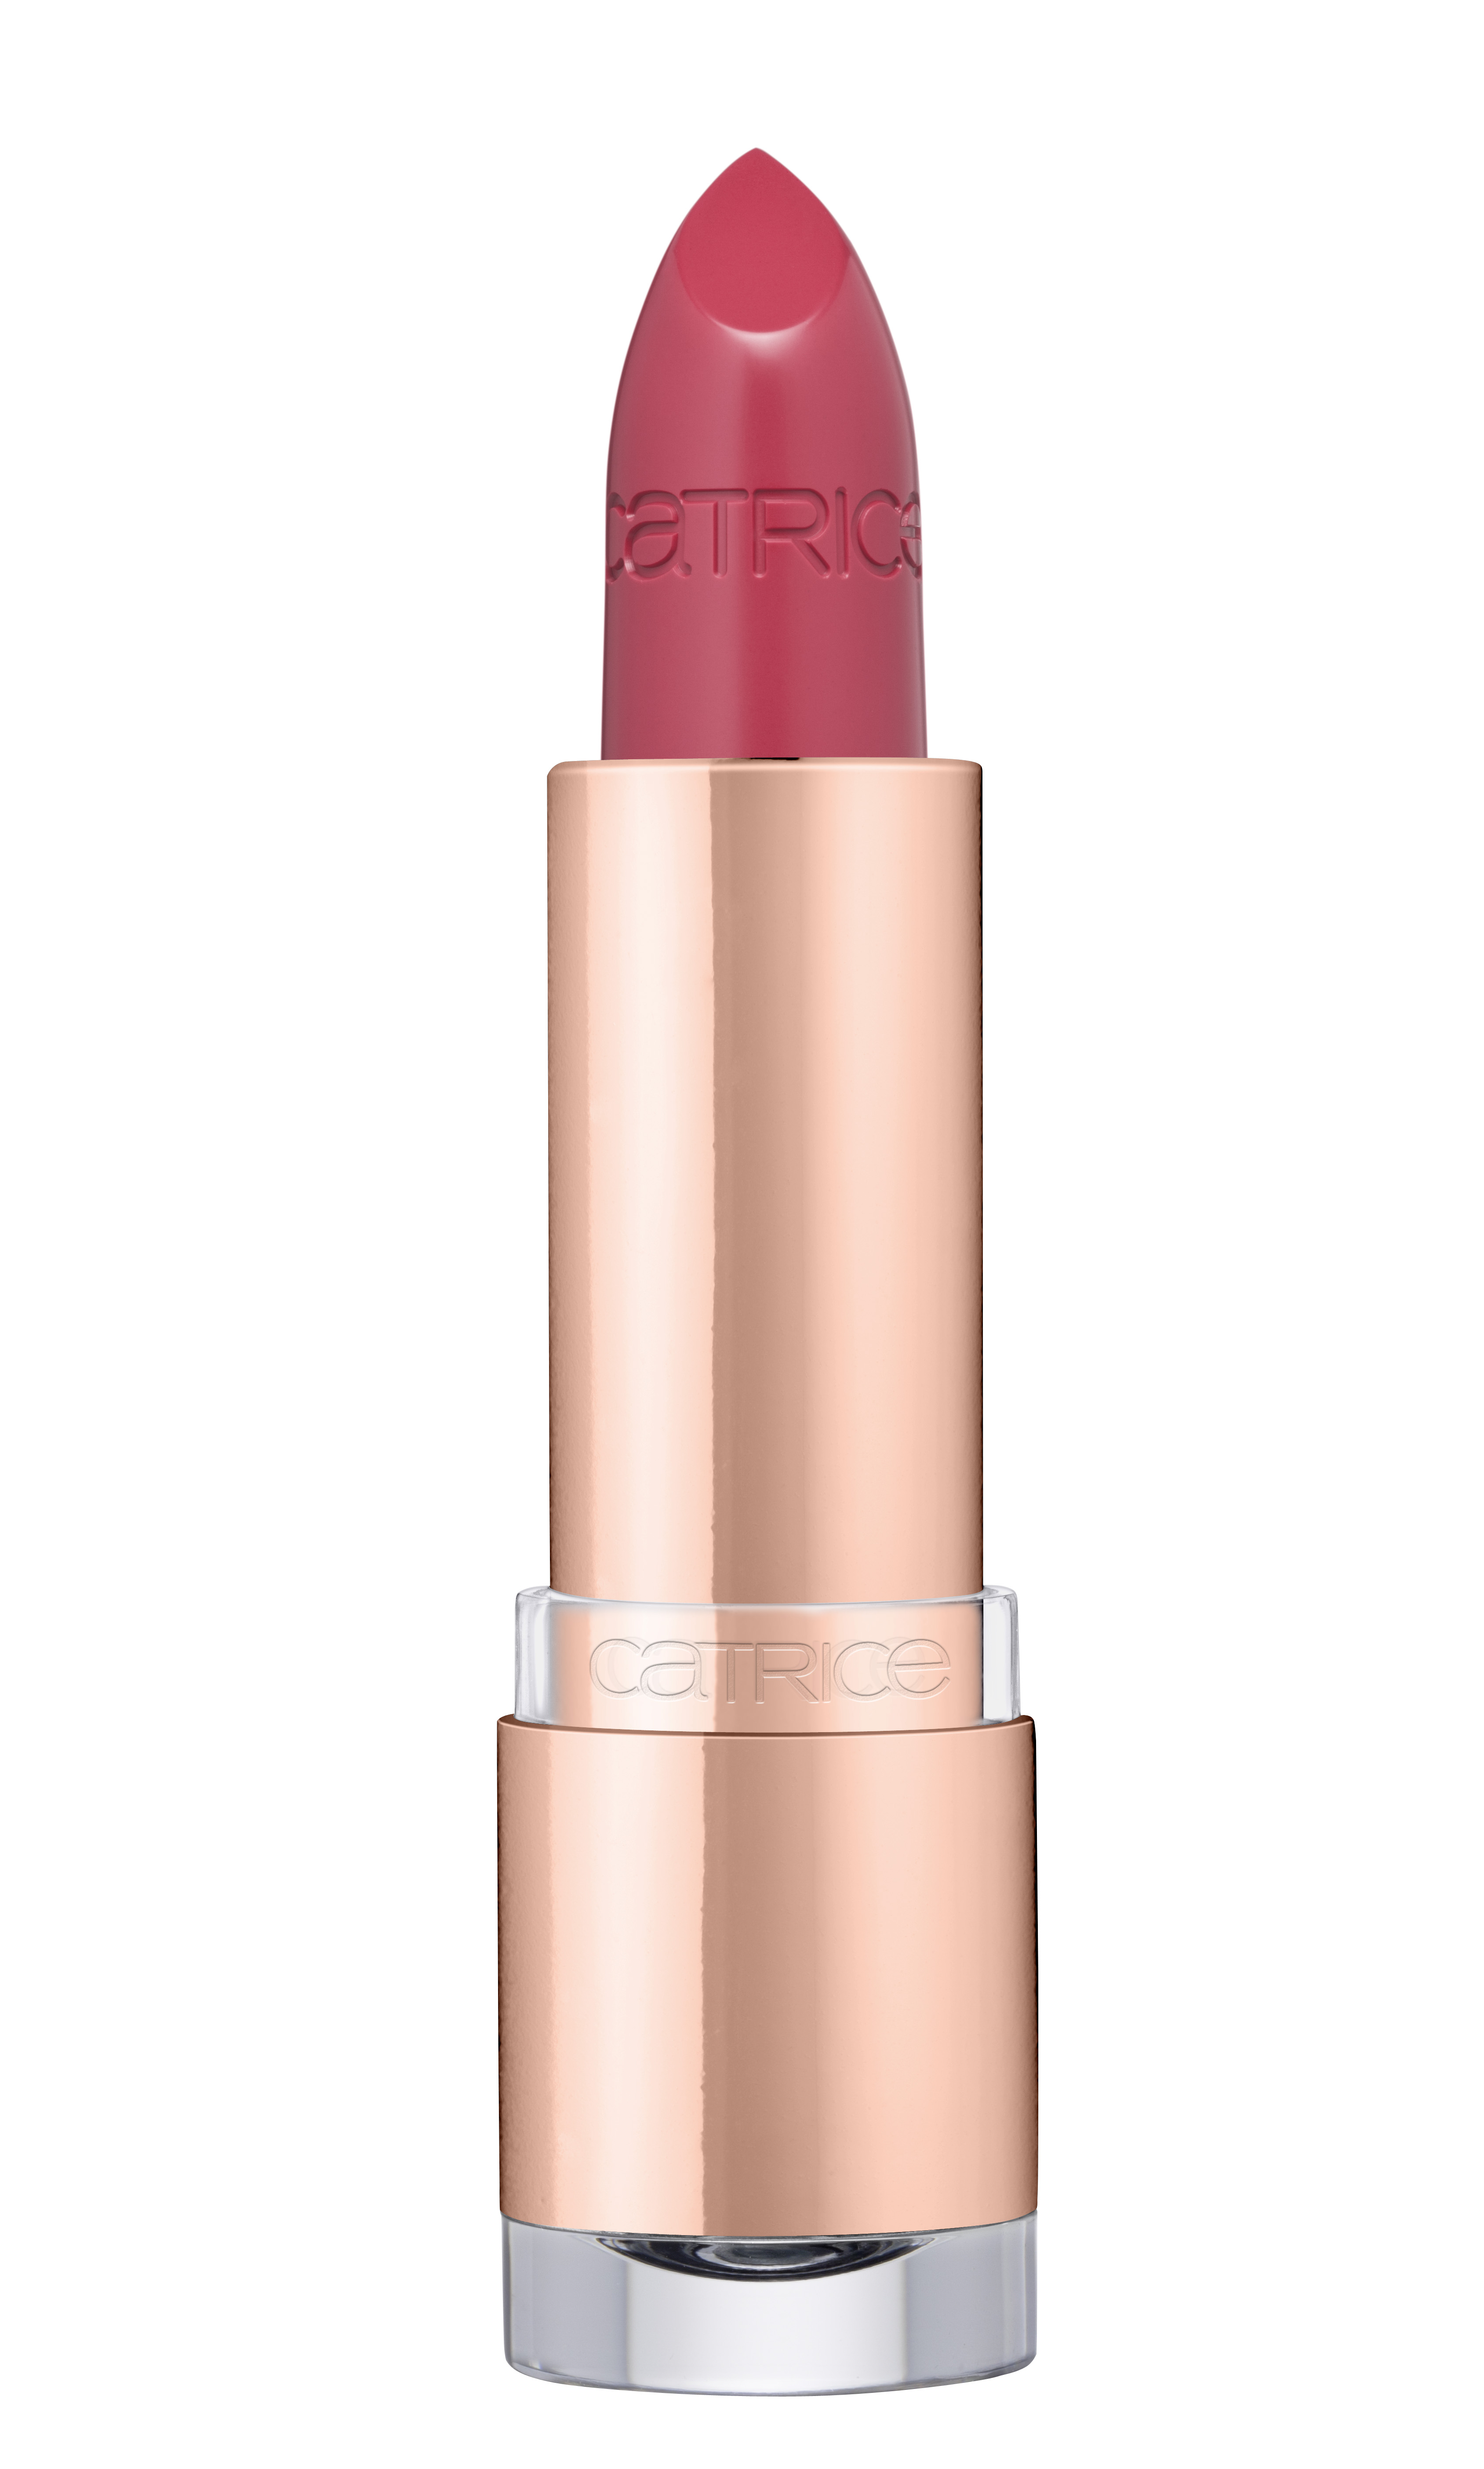 Catrice Metallure Lip Colour C03